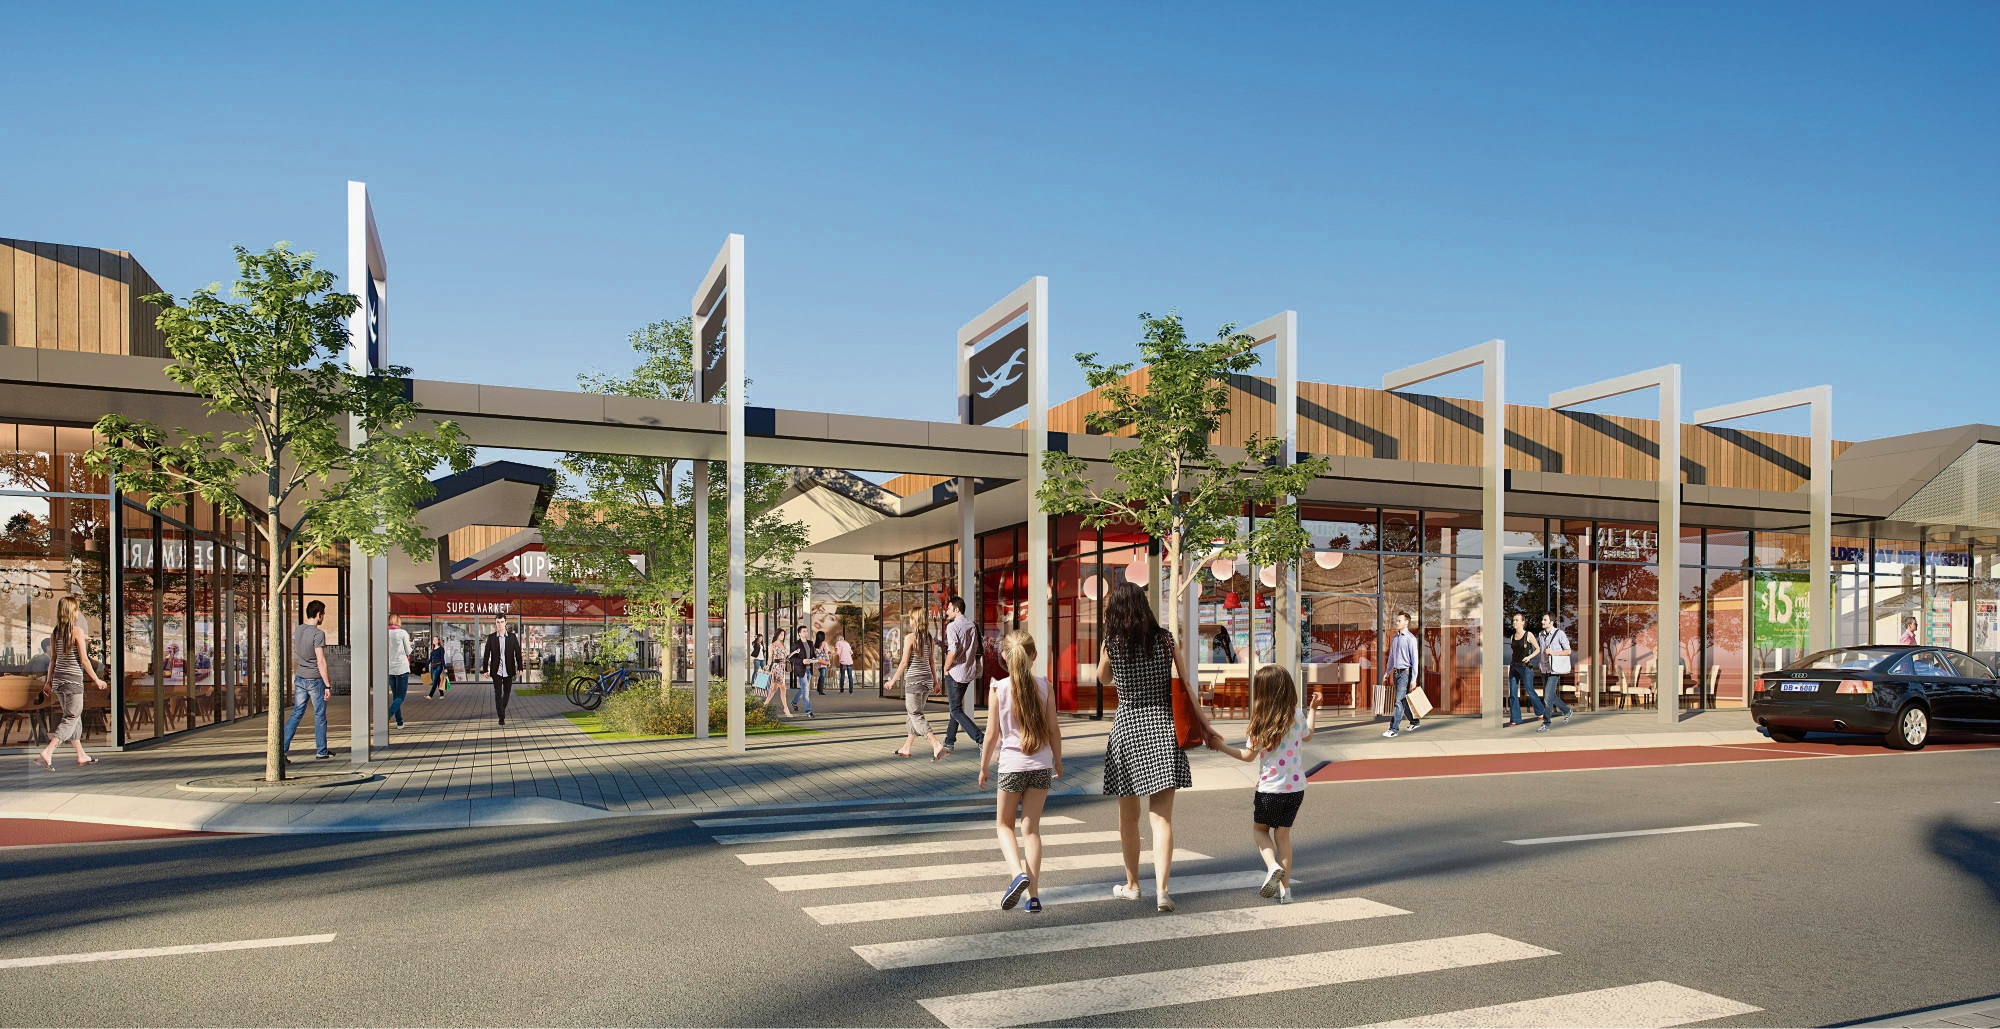 New village shopping centre and retail precinct planned for Golden Bay